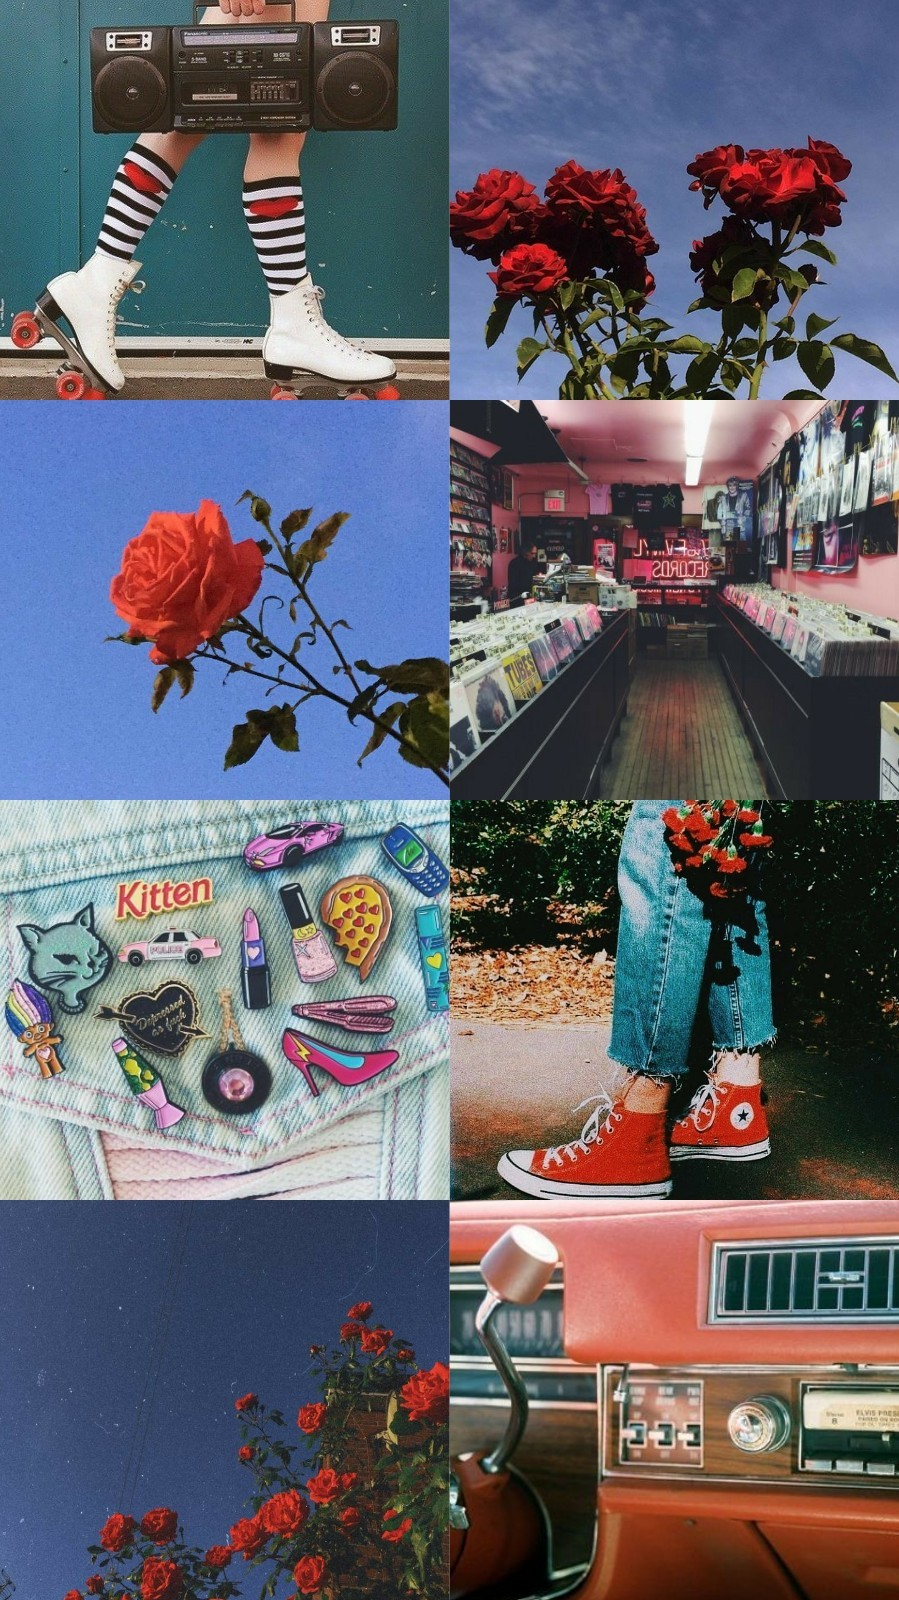 Vintage With Roses Aesthetic 🌹 @ellekmsn Asked - Retro Vintage Aesthetic Backgrounds - HD Wallpaper